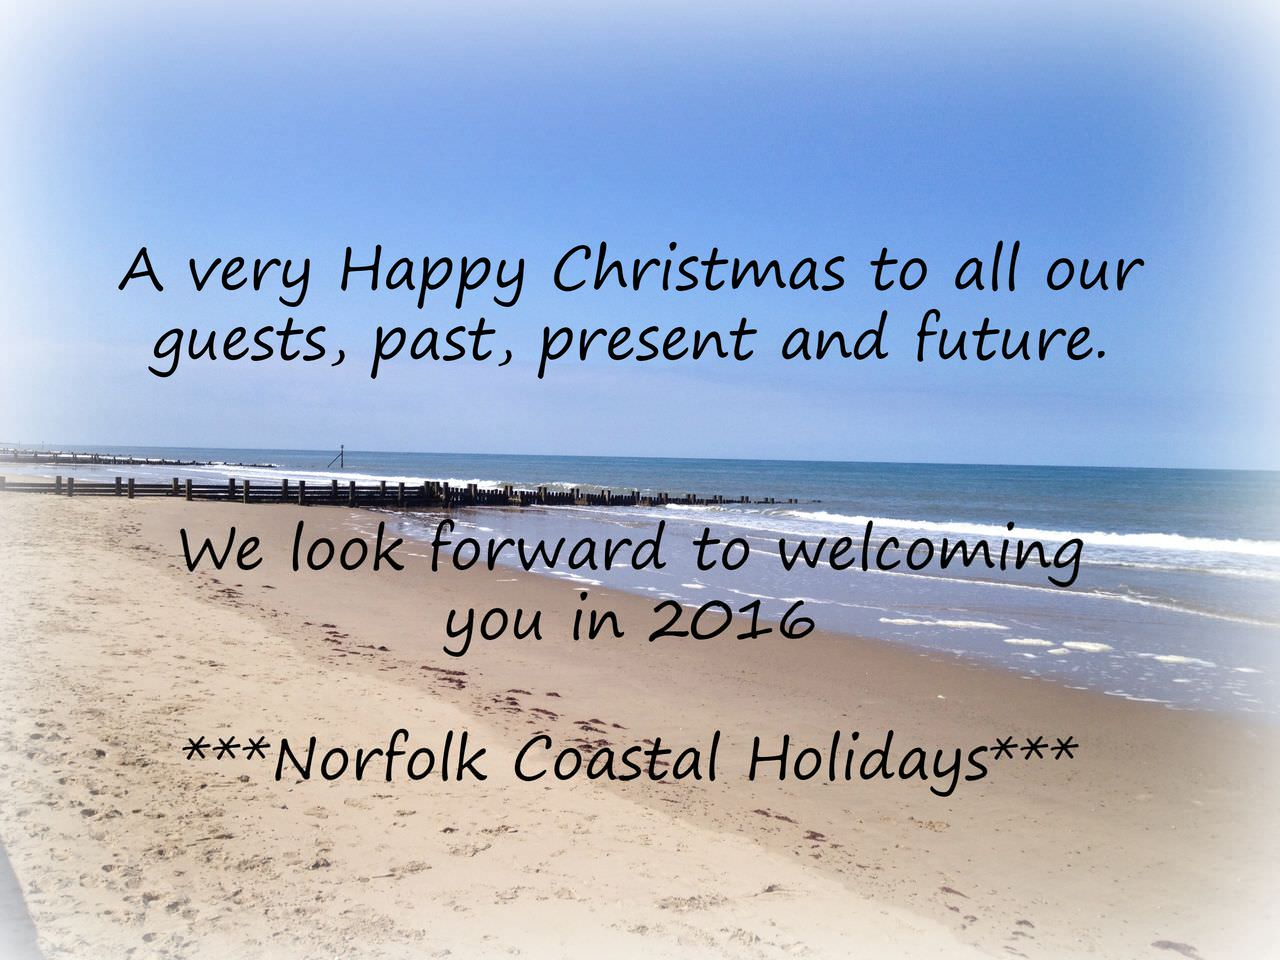 Christmas wishes from Norfolk